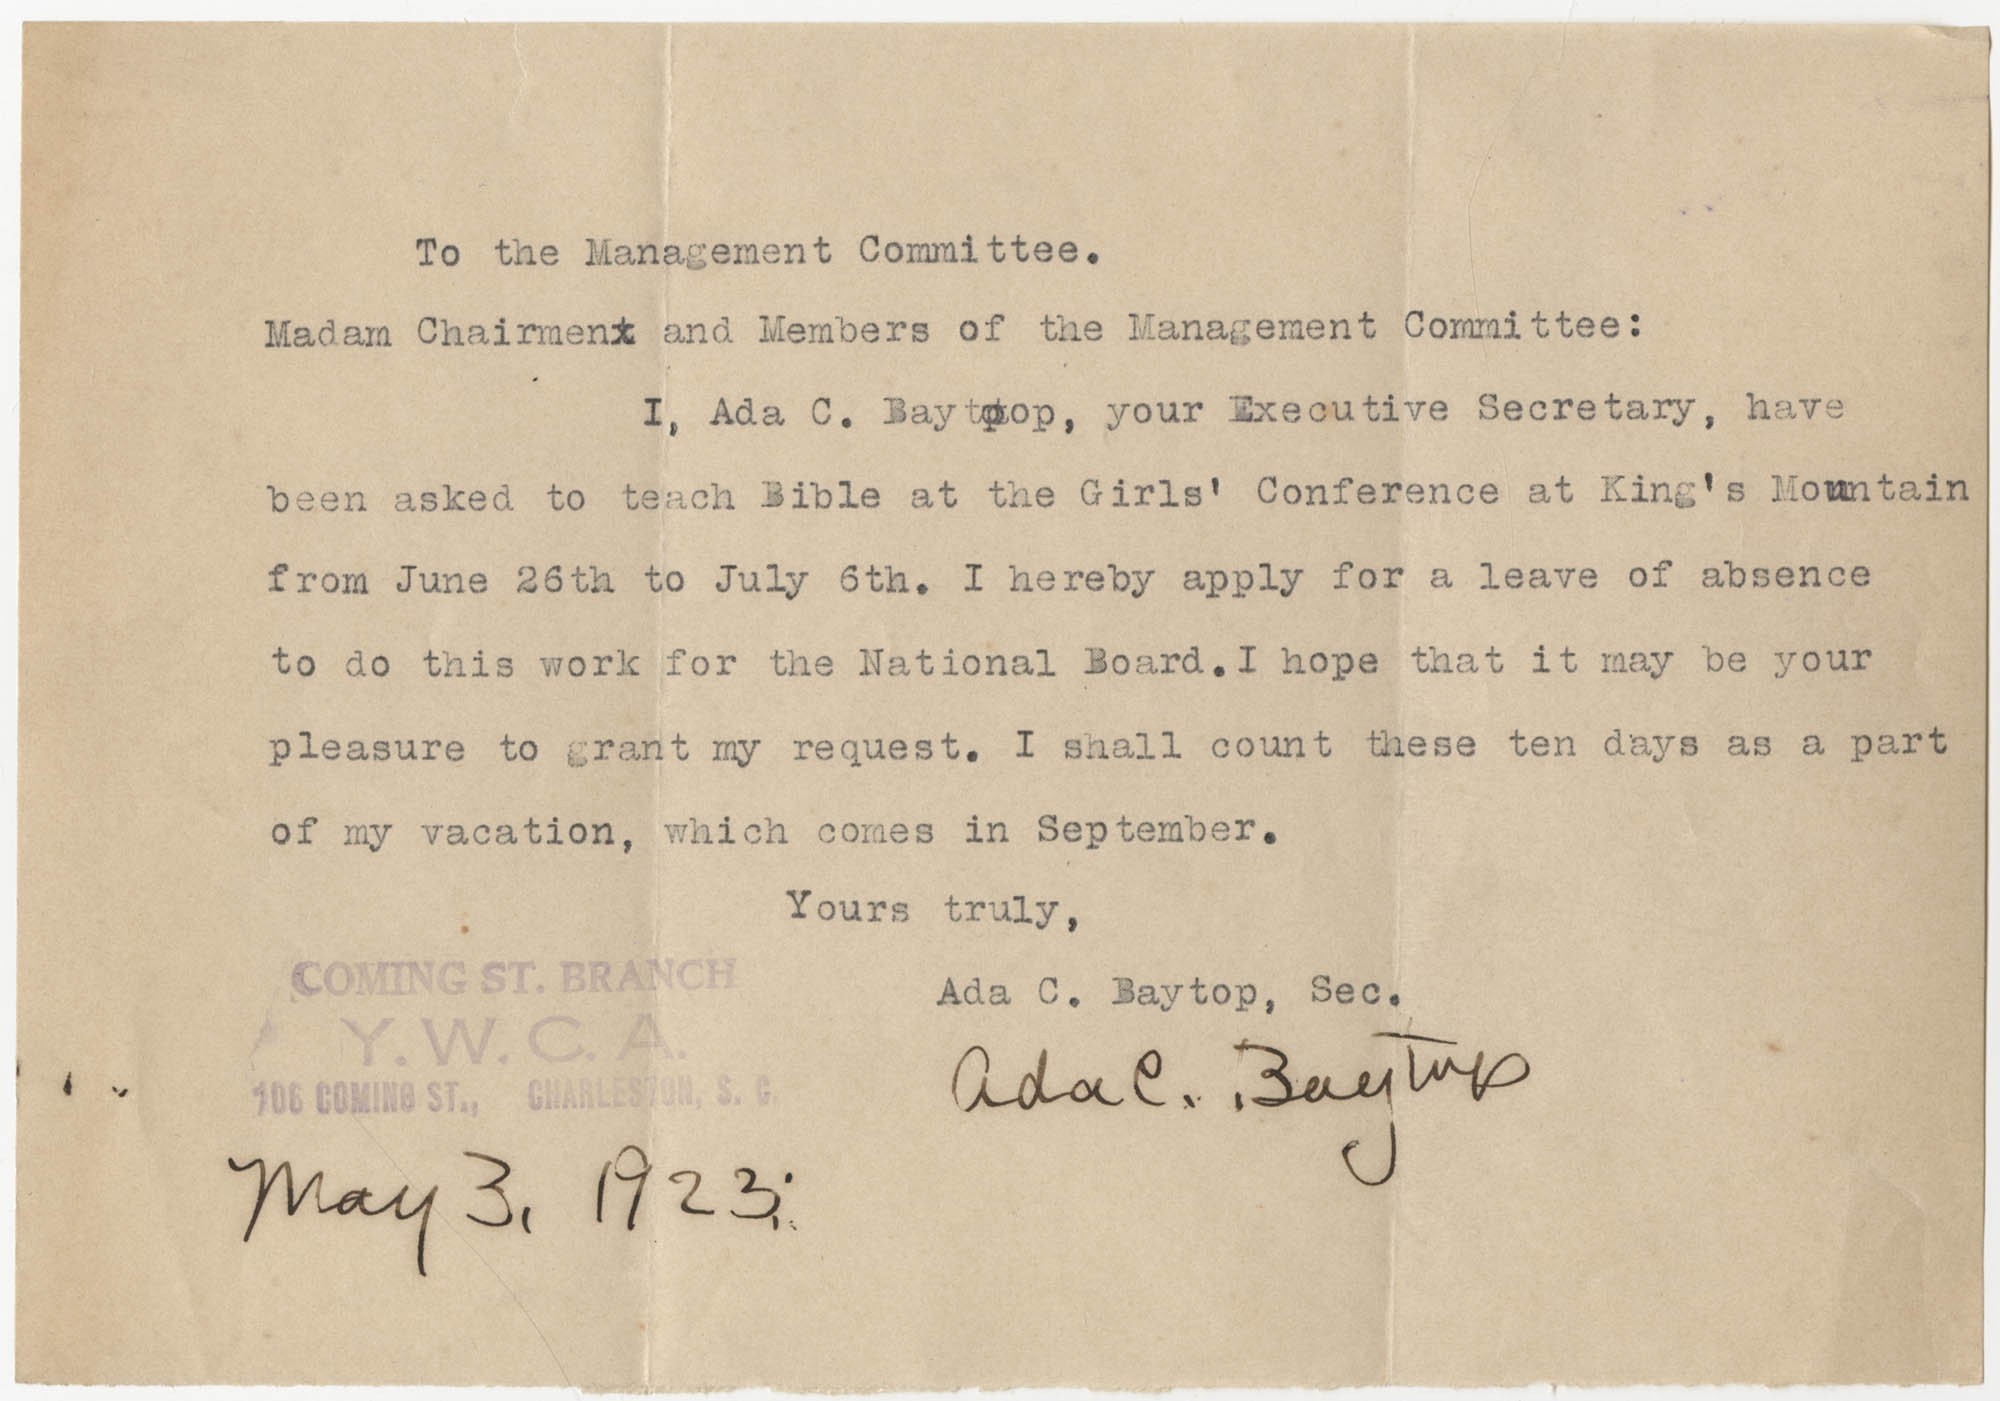 Letter from Ada C. Baytop to the Management Committee, Coming Street Y.W.C.A., May 3, 1923